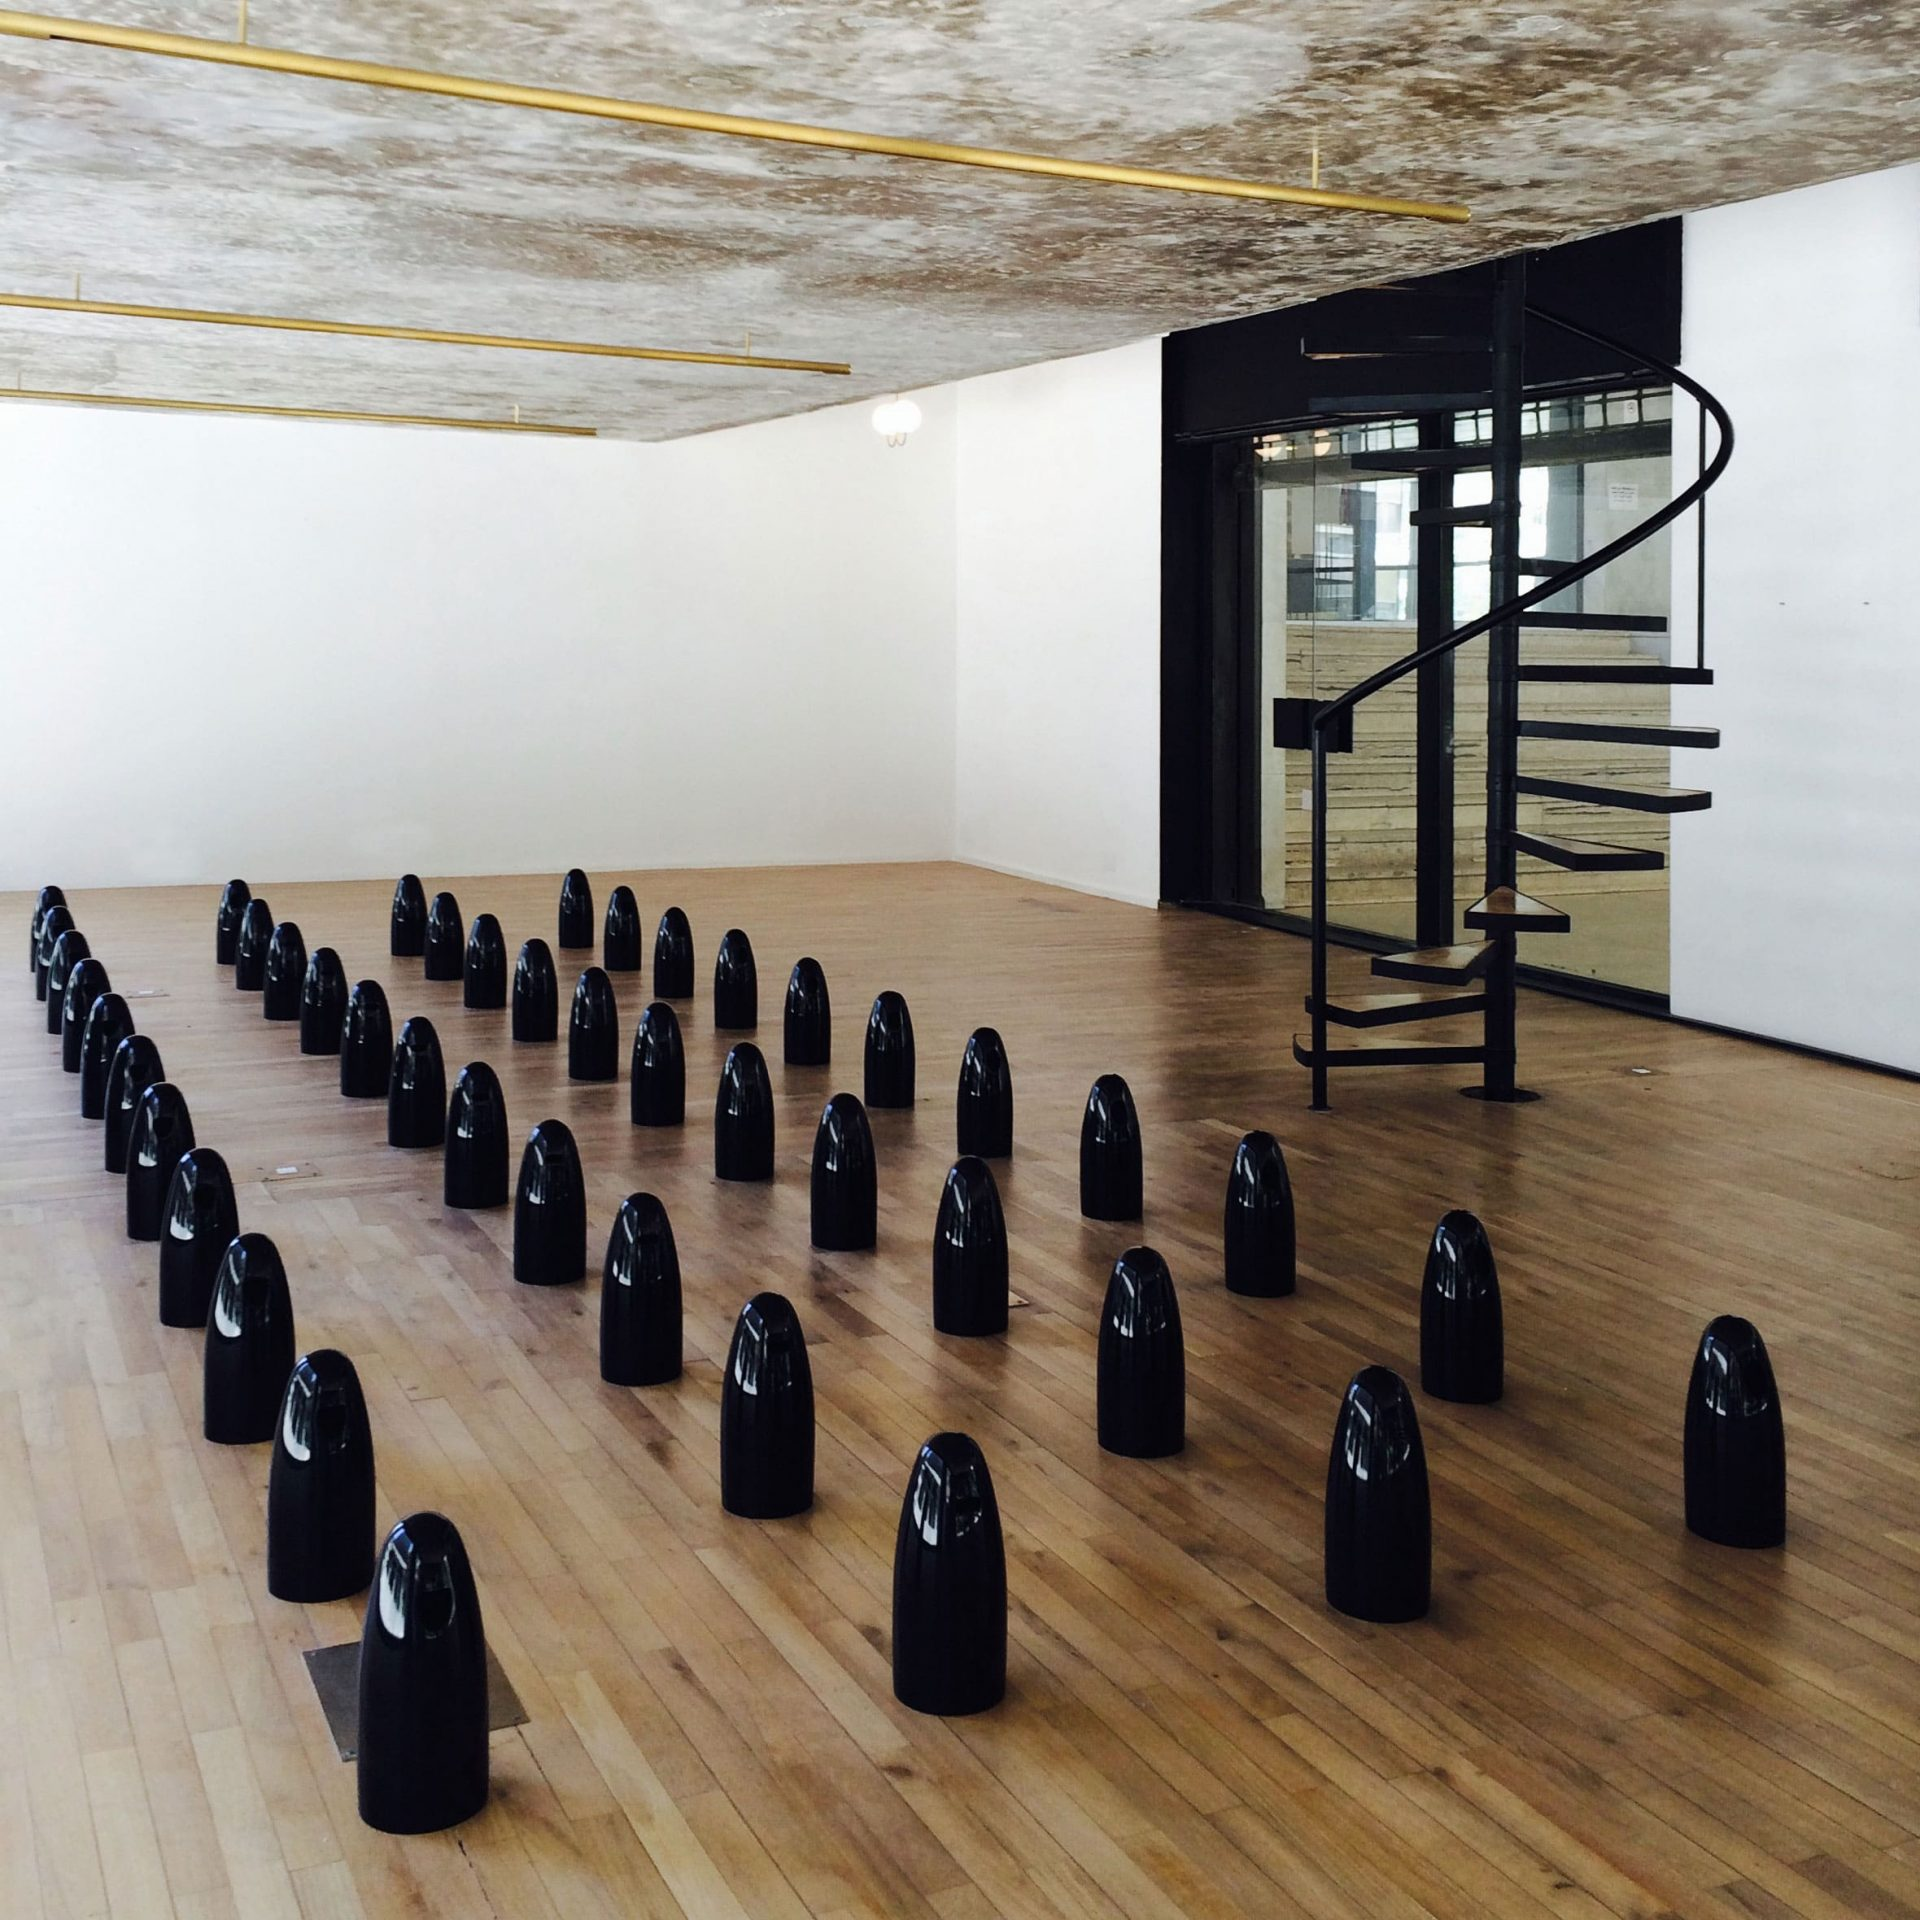 small black ceramic dolls are lined along the wooden floor of a small room with white walls and a spiral staircase